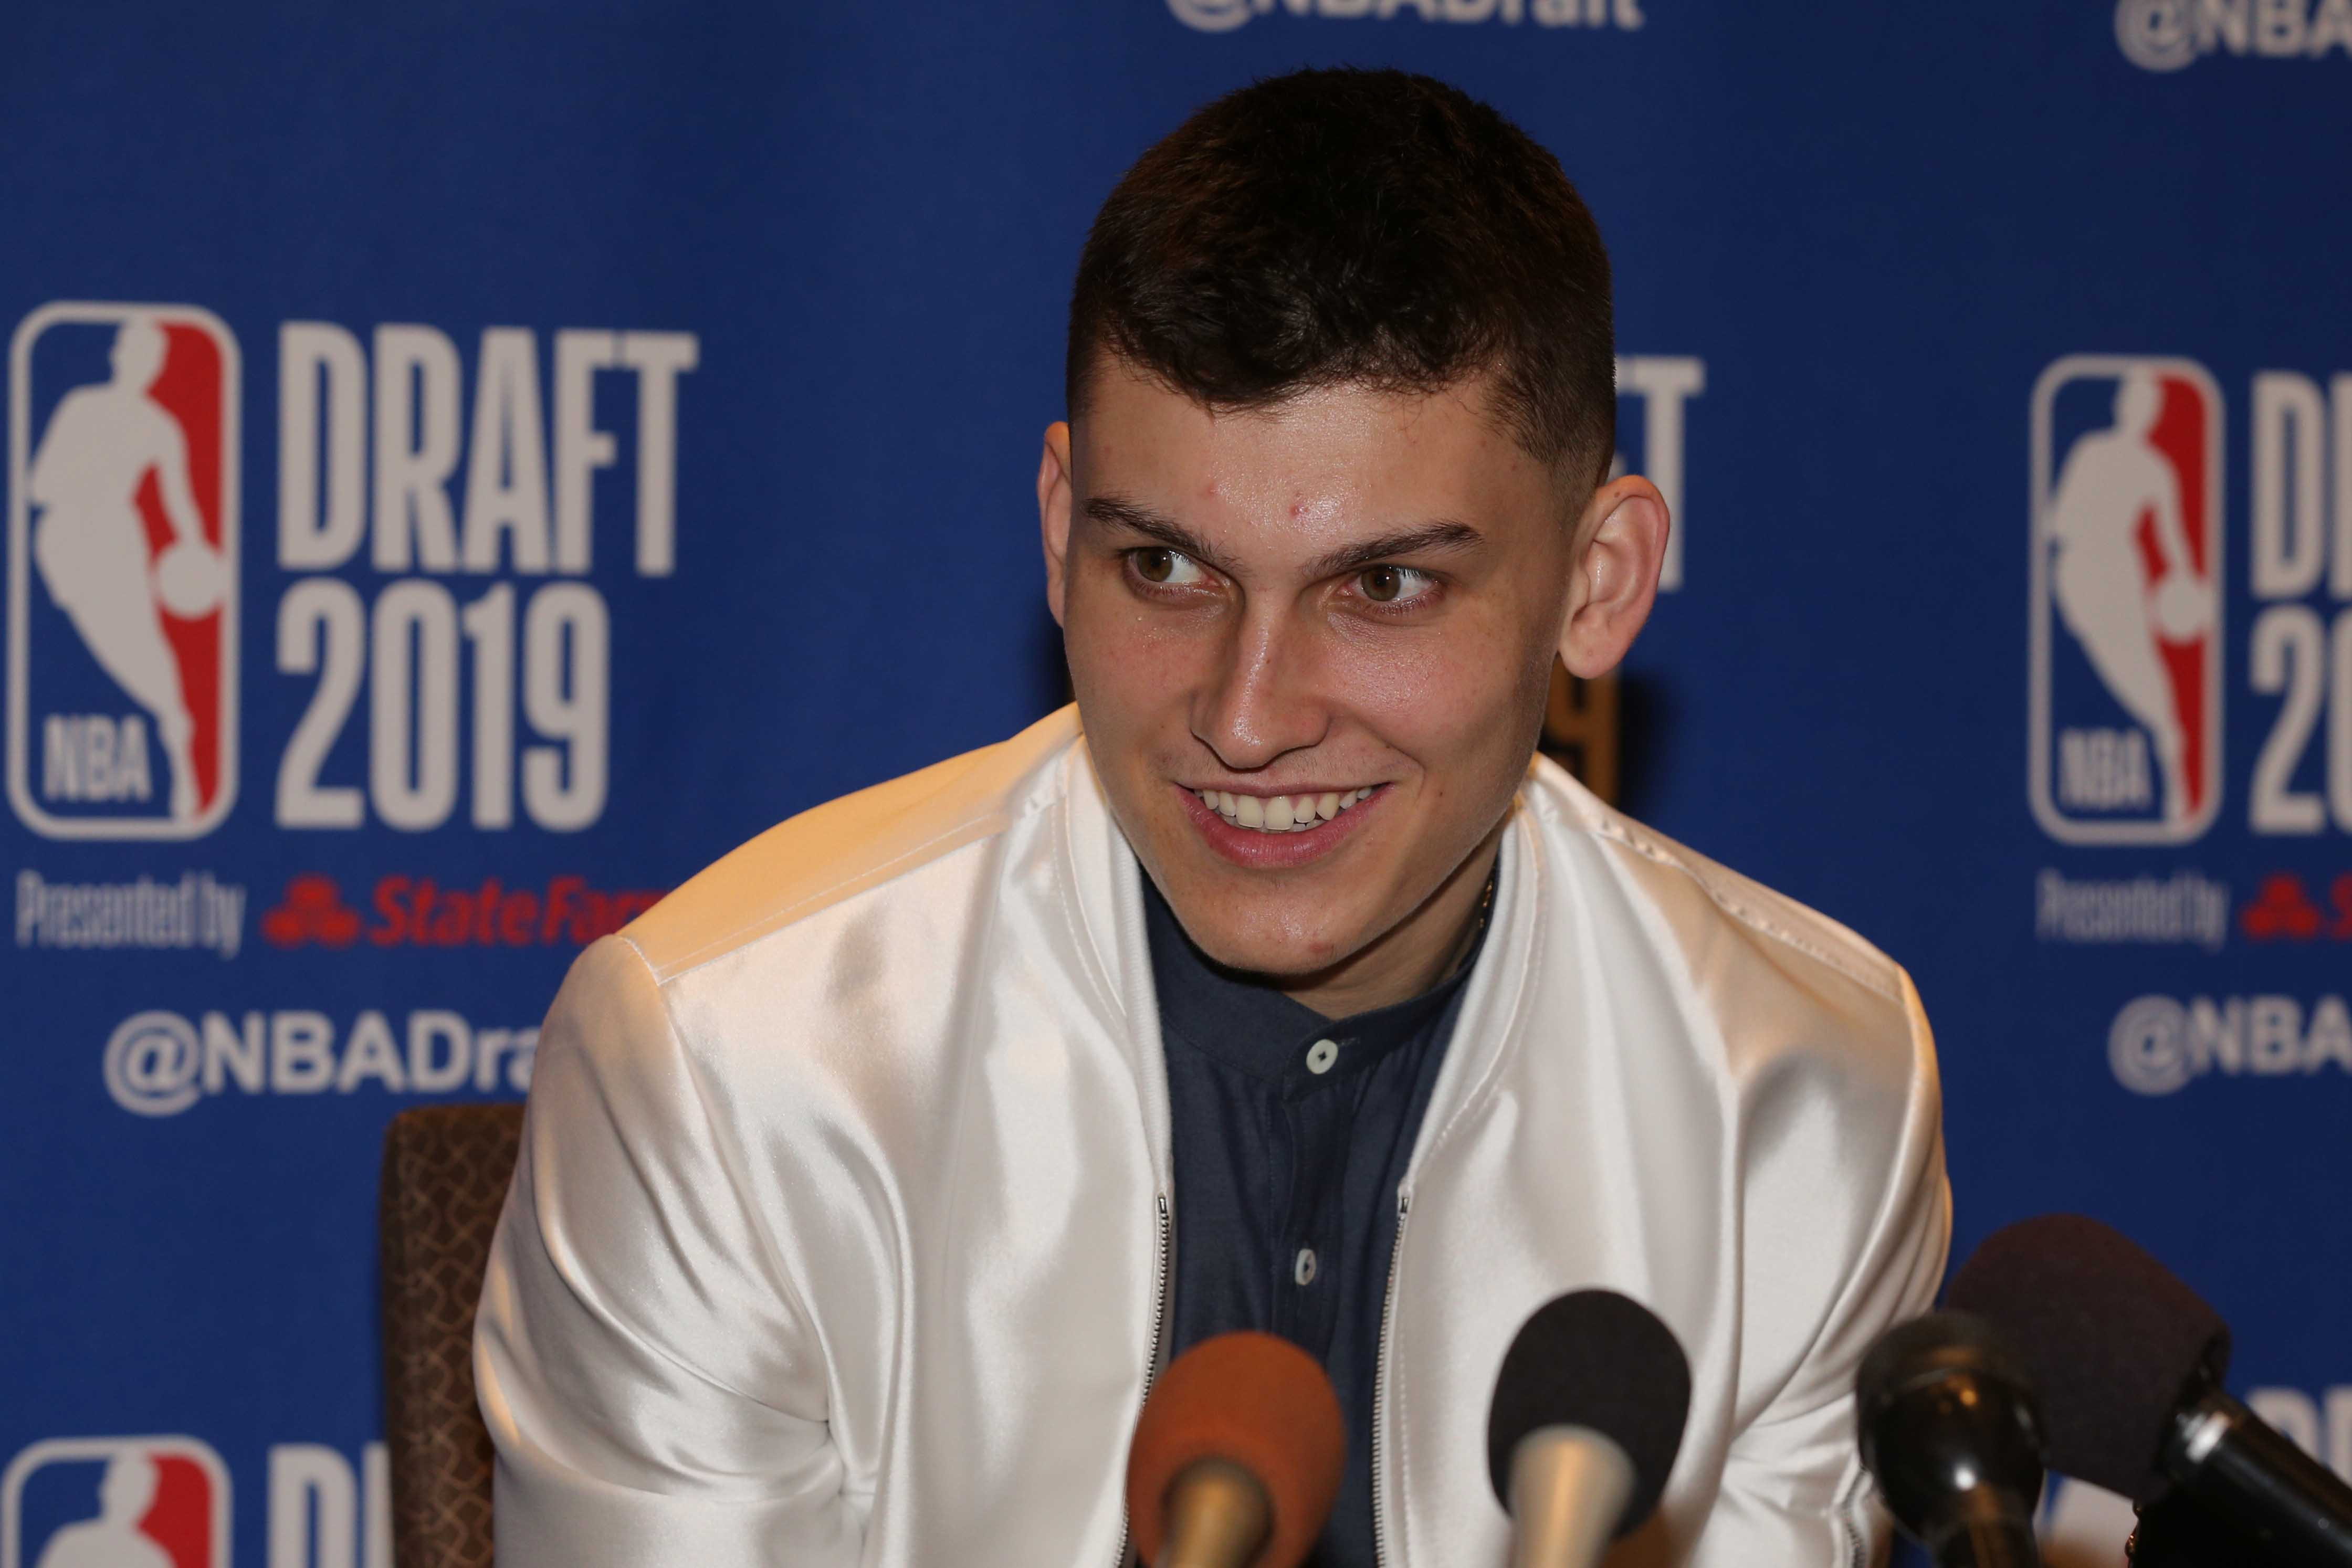 NBA: NBA Draft-Top Prospects